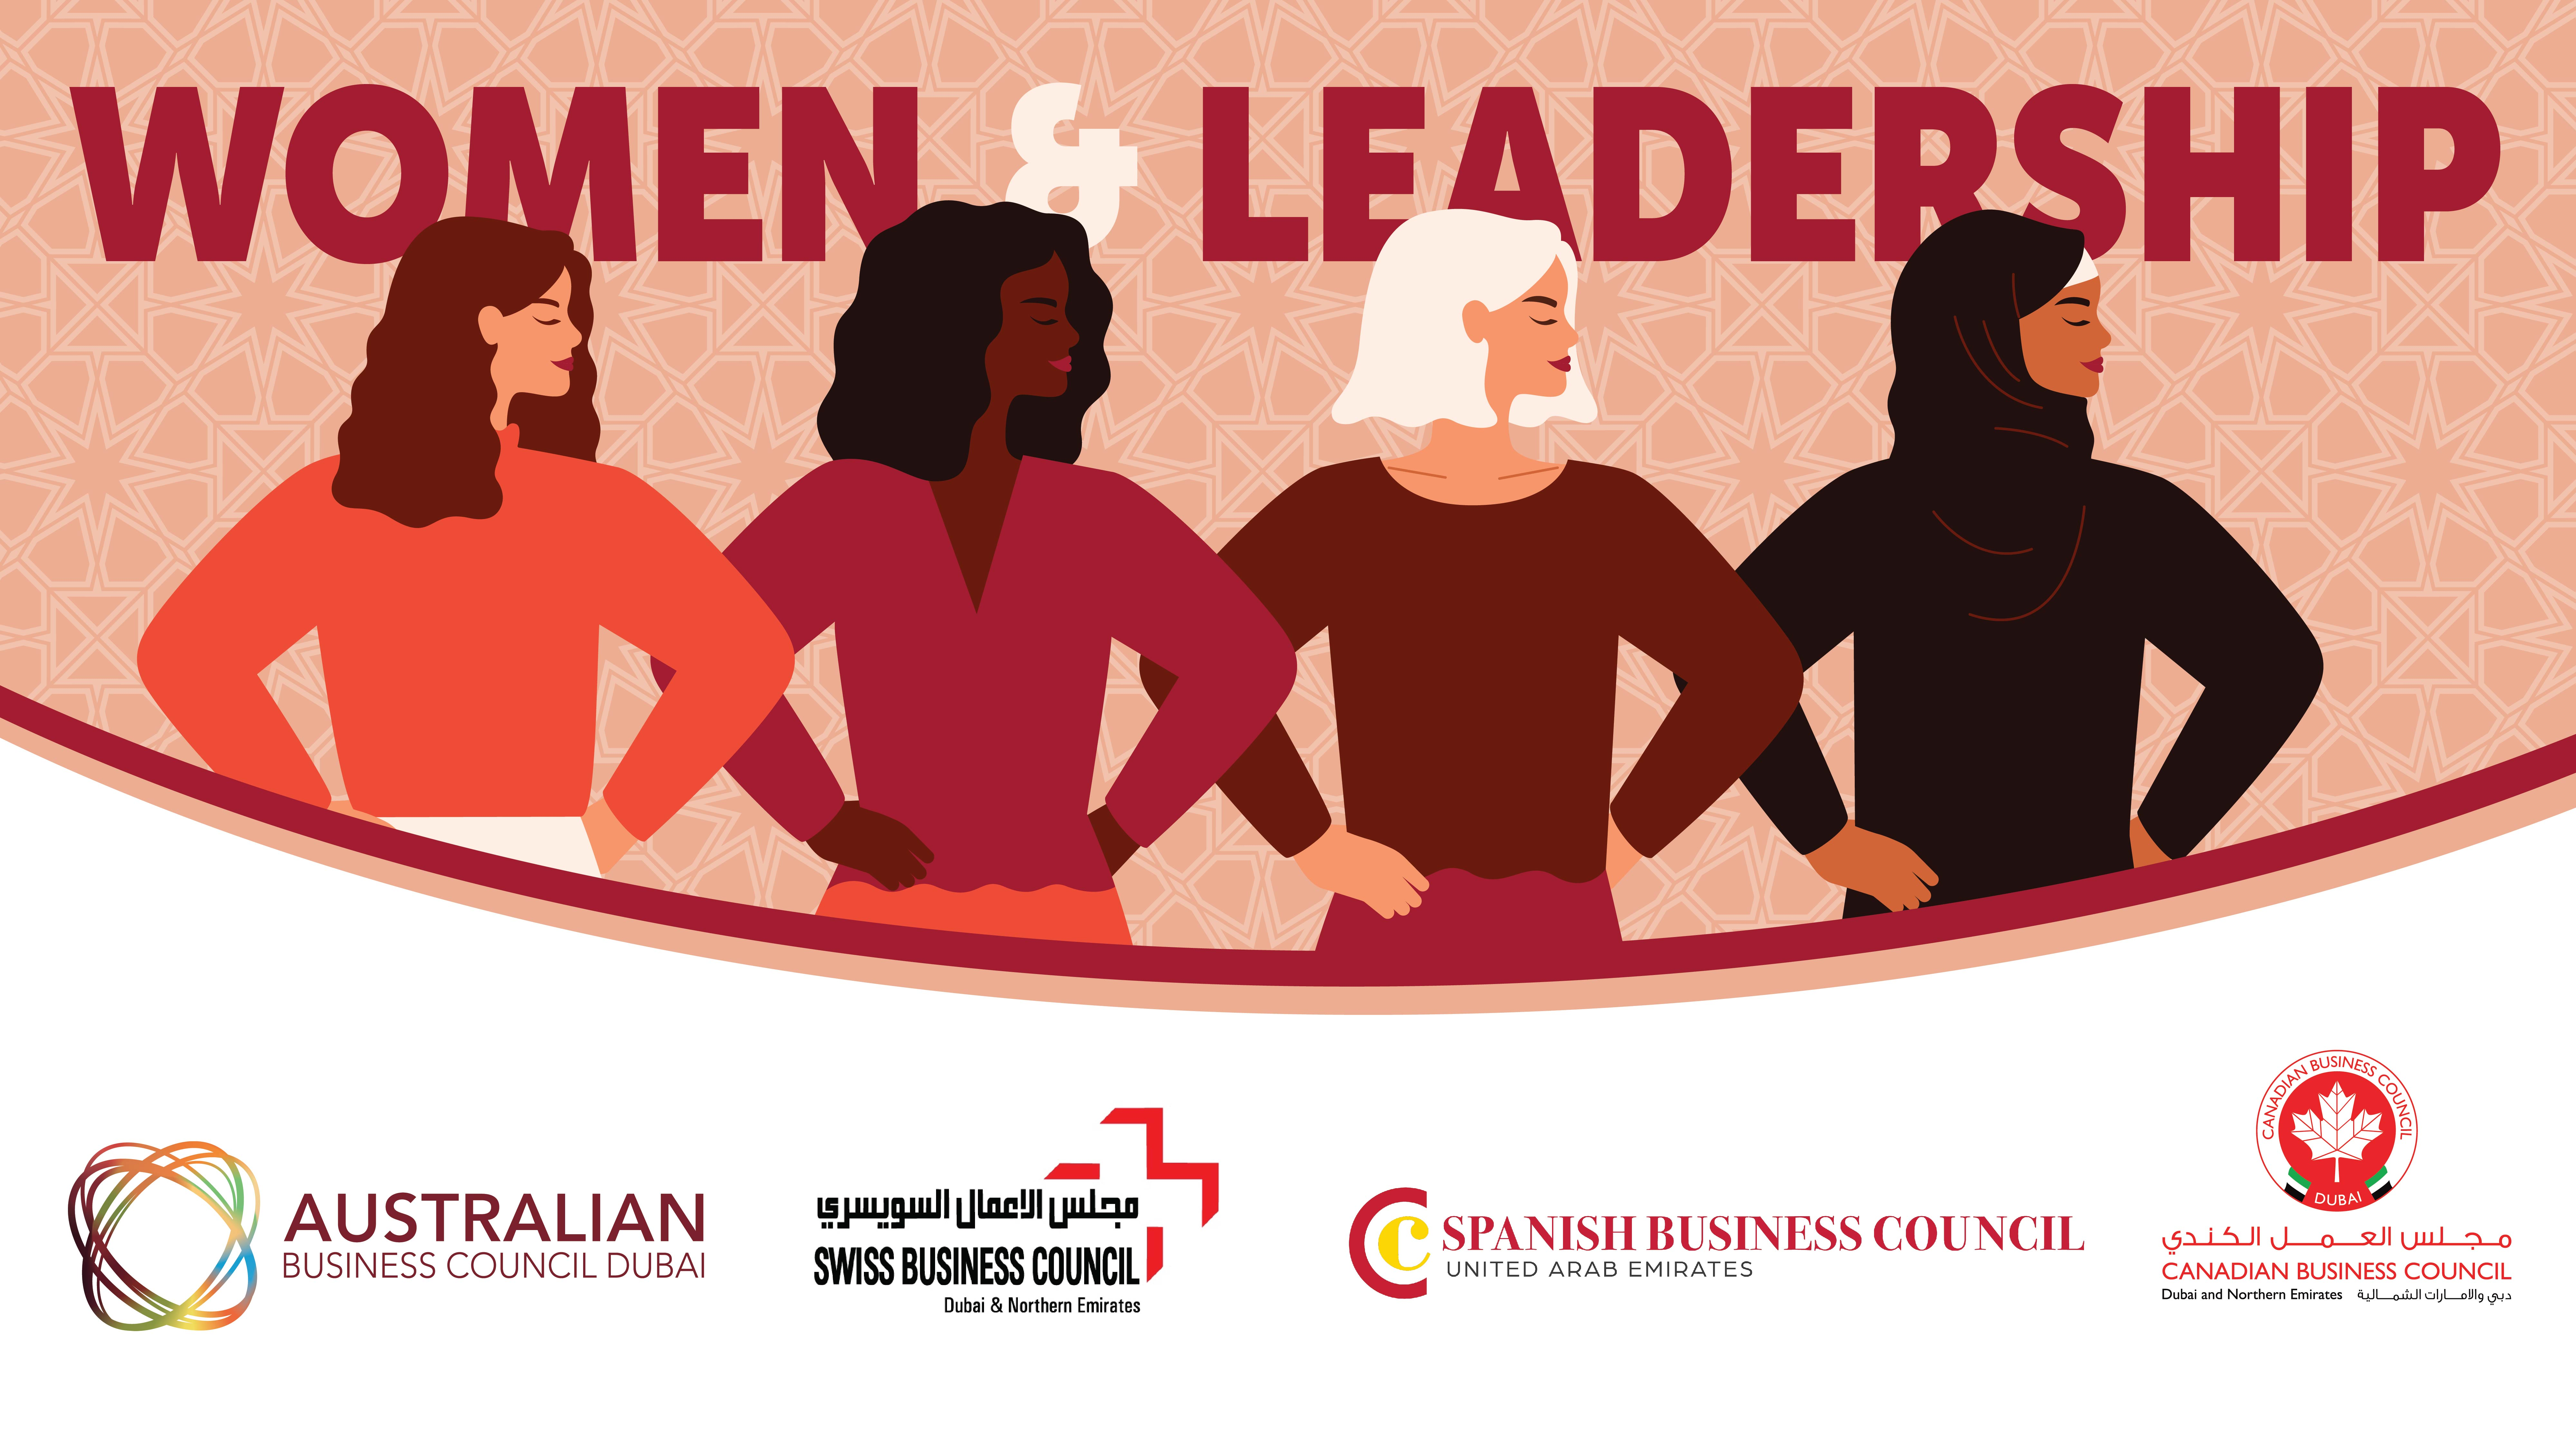 Women and Leadership image